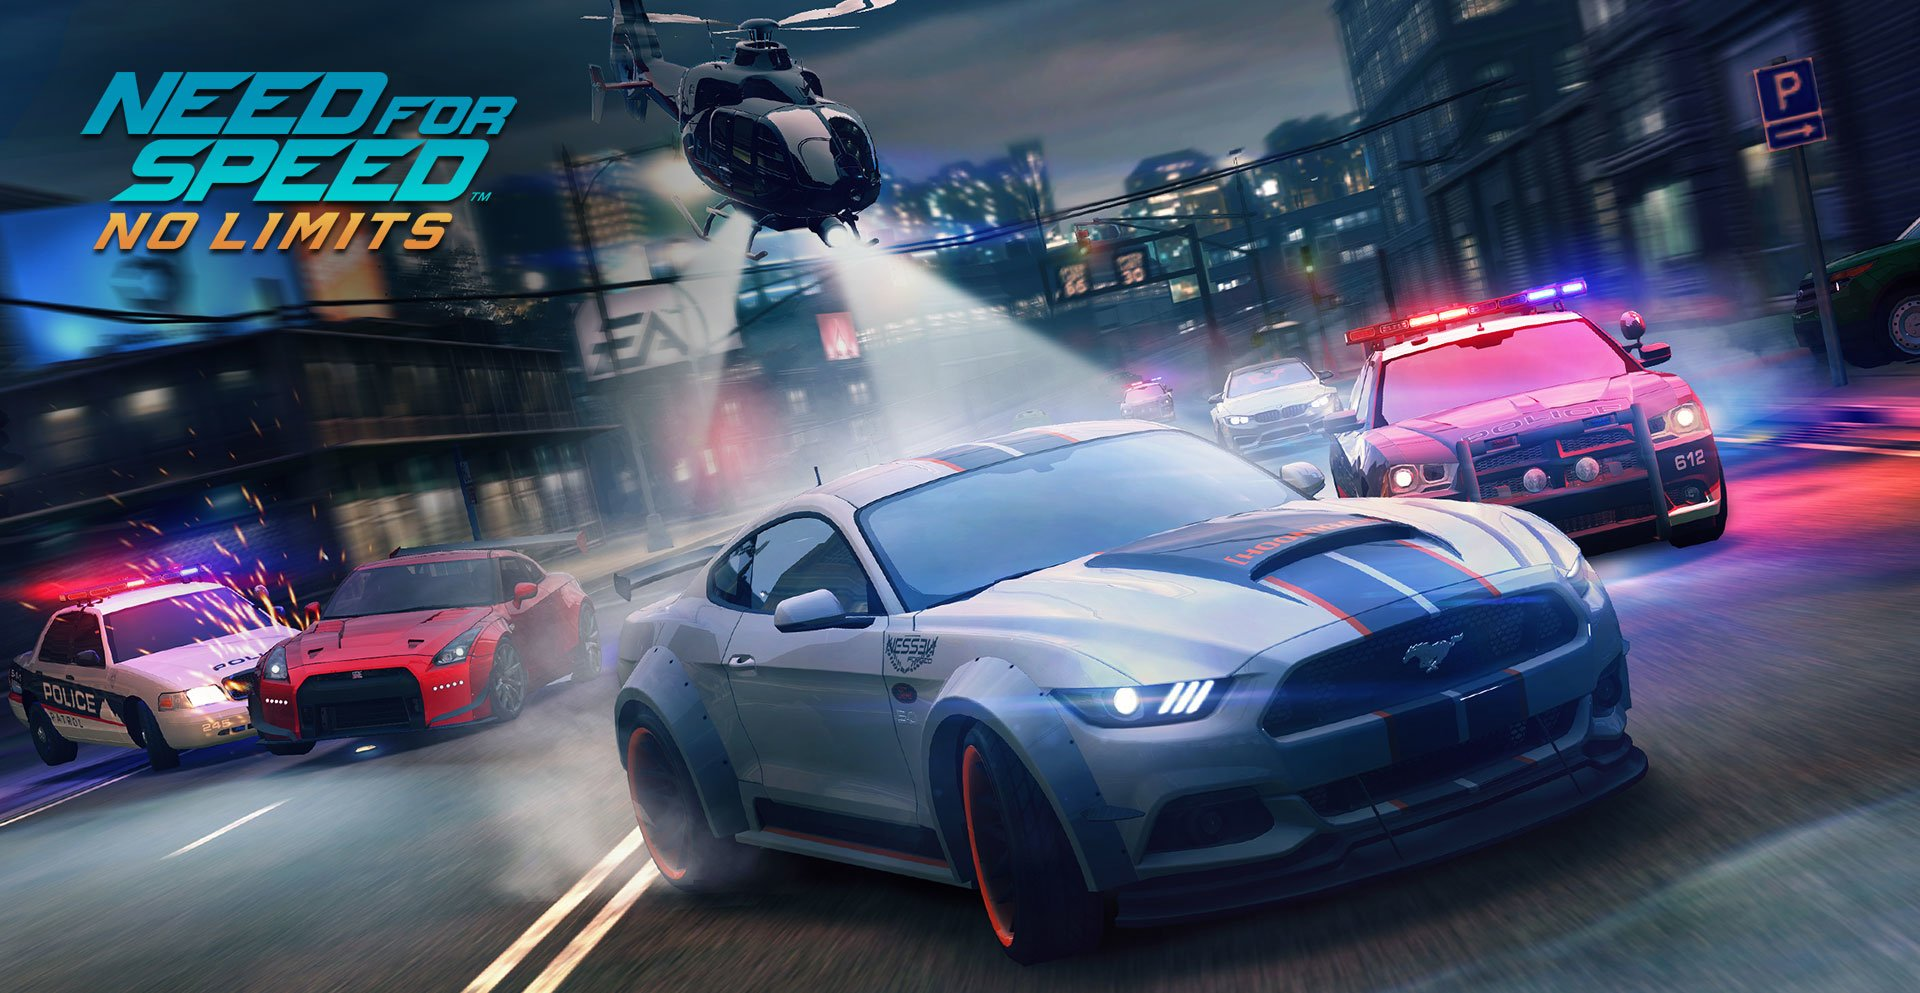 10 Need For Speed No Limits HD Wallpapers Background Images 1920x993